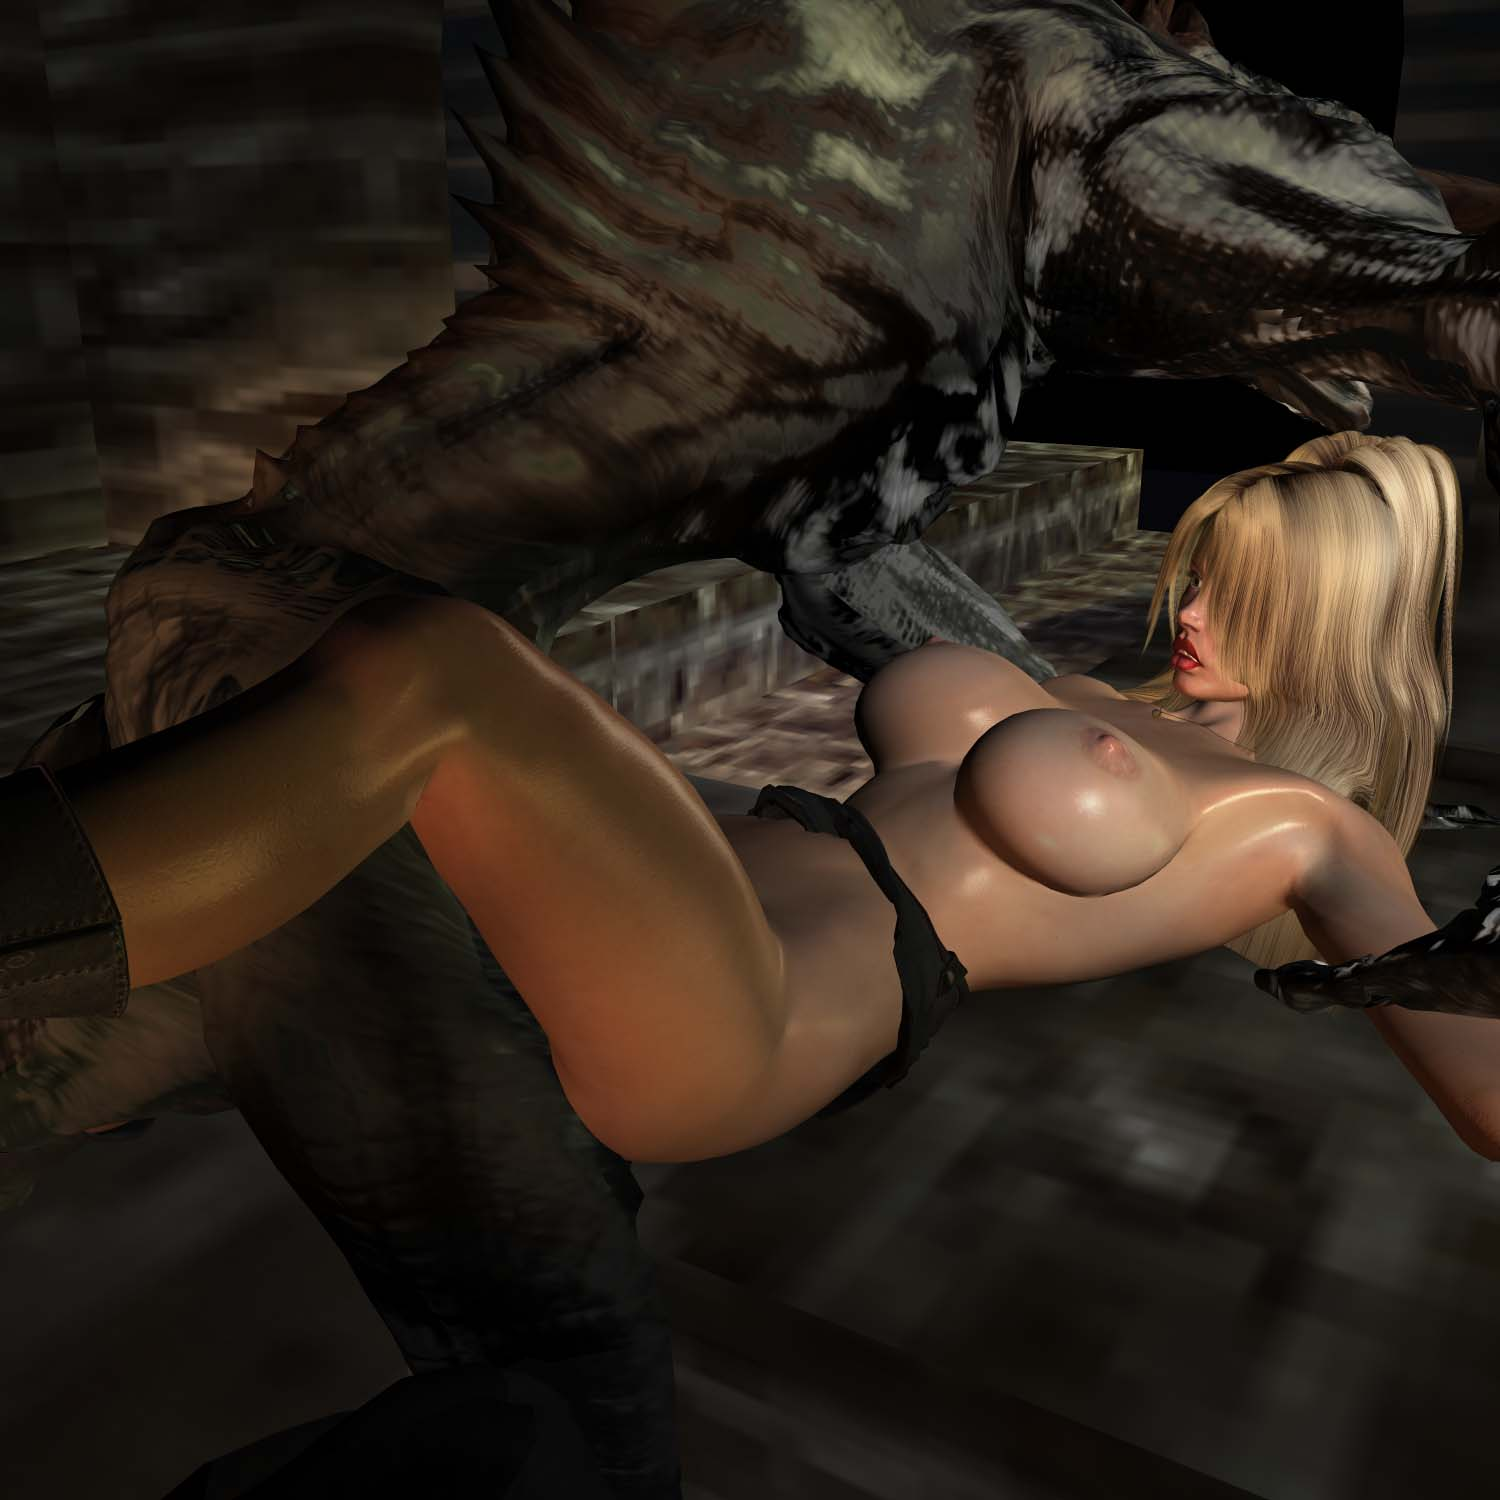 3d sex monster cartoons sexy scene